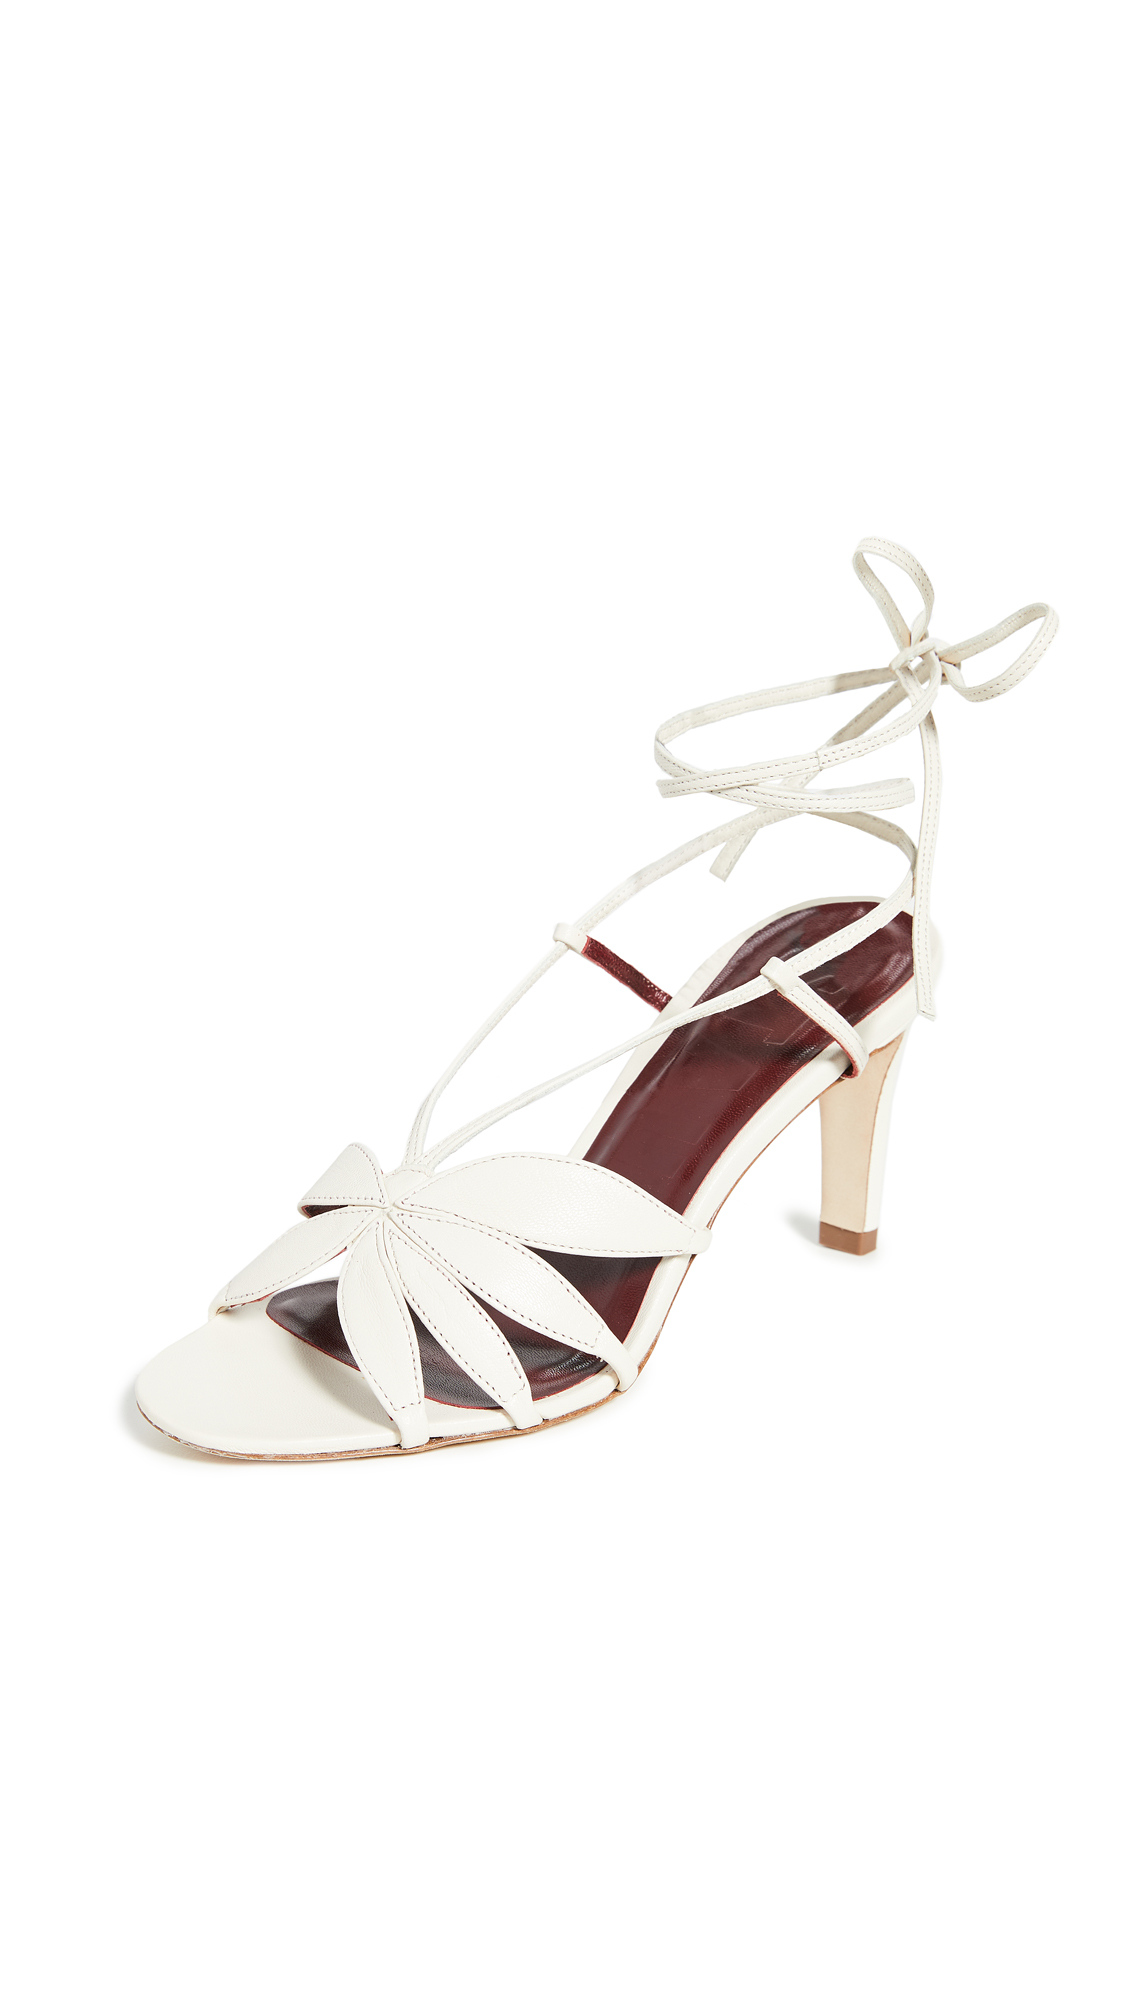 Buy STAUD Flora Sandals online, shop STAUD